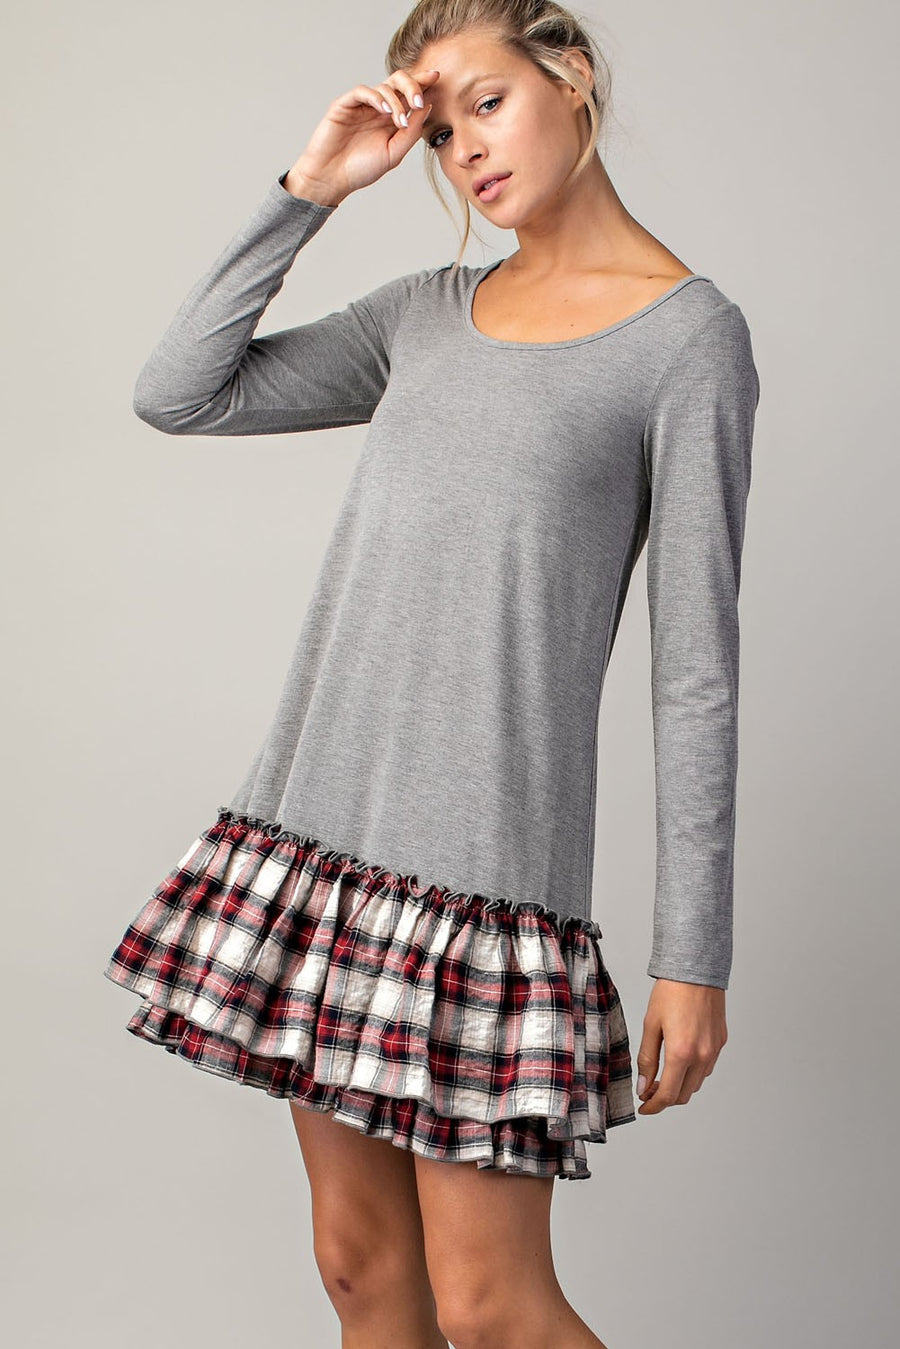 Grey & Plaid Hem Extender